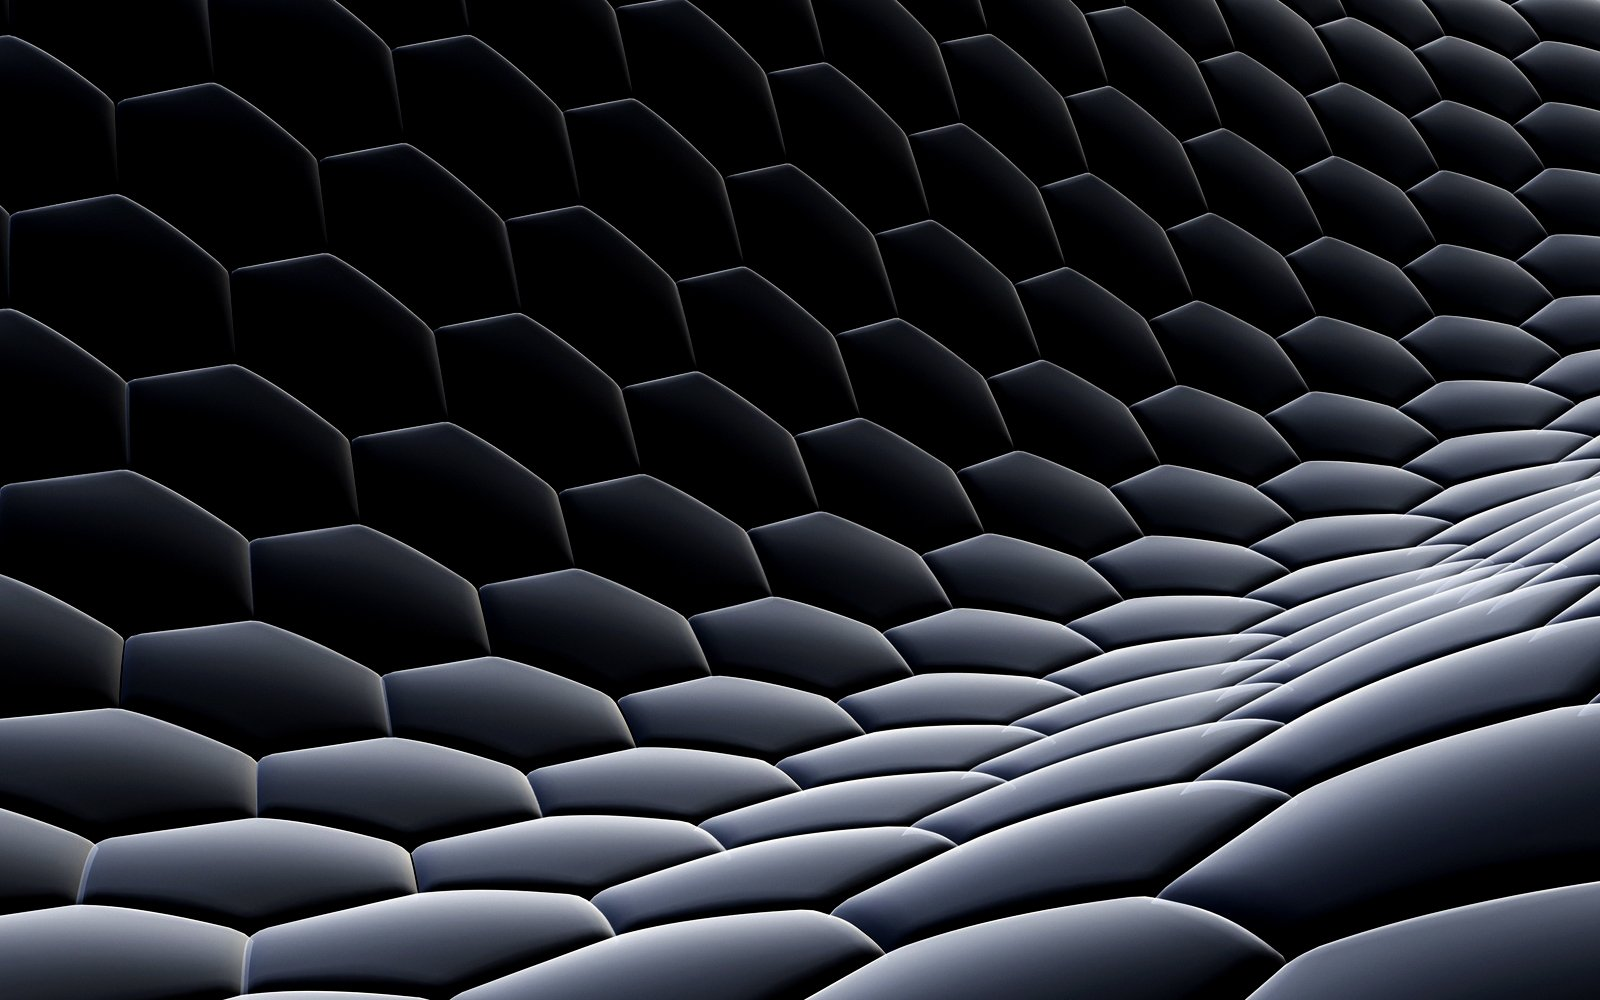 3D Hexagon Blocks HD Wallpapers Download Free Wallpapers in HD for ...